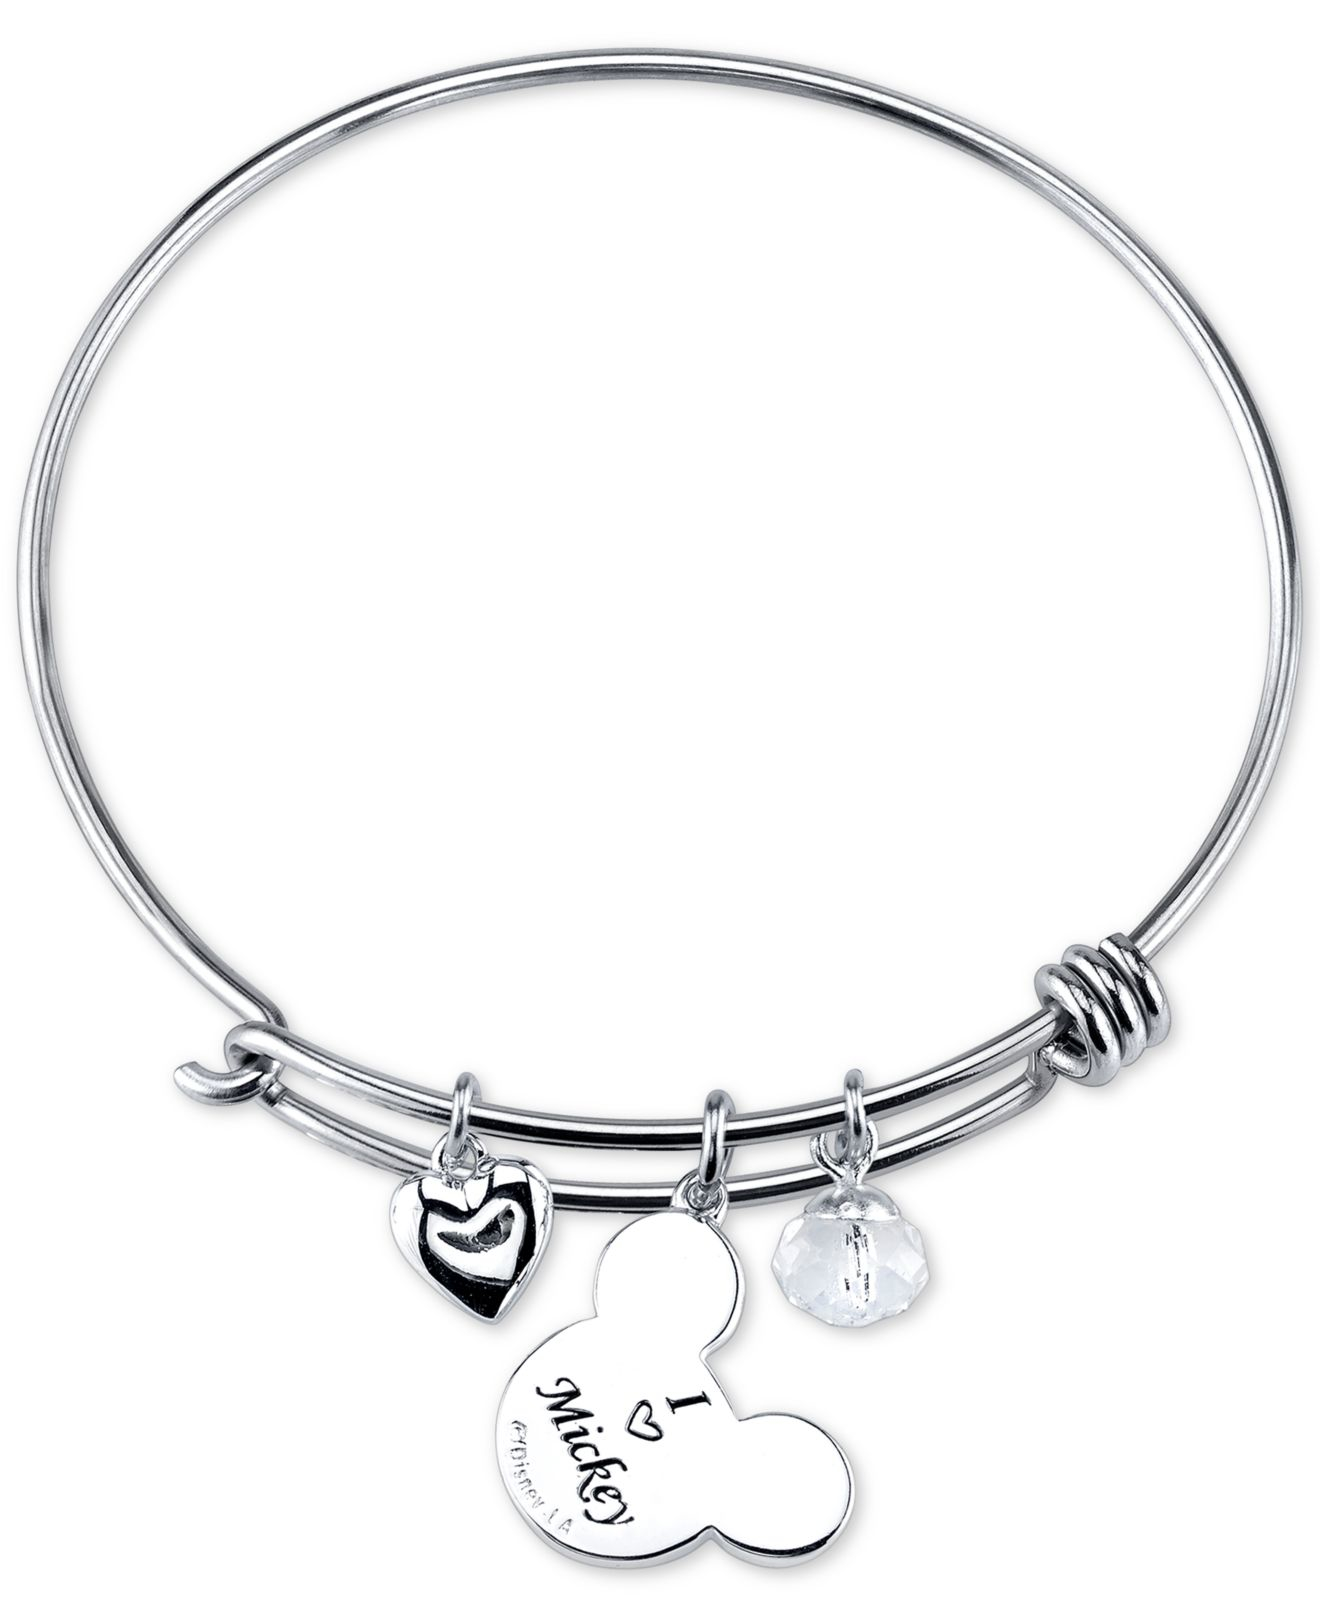 Lyst - Disney Mickey Mouse Crystal Charm Bracelet In Stainless Steel ...